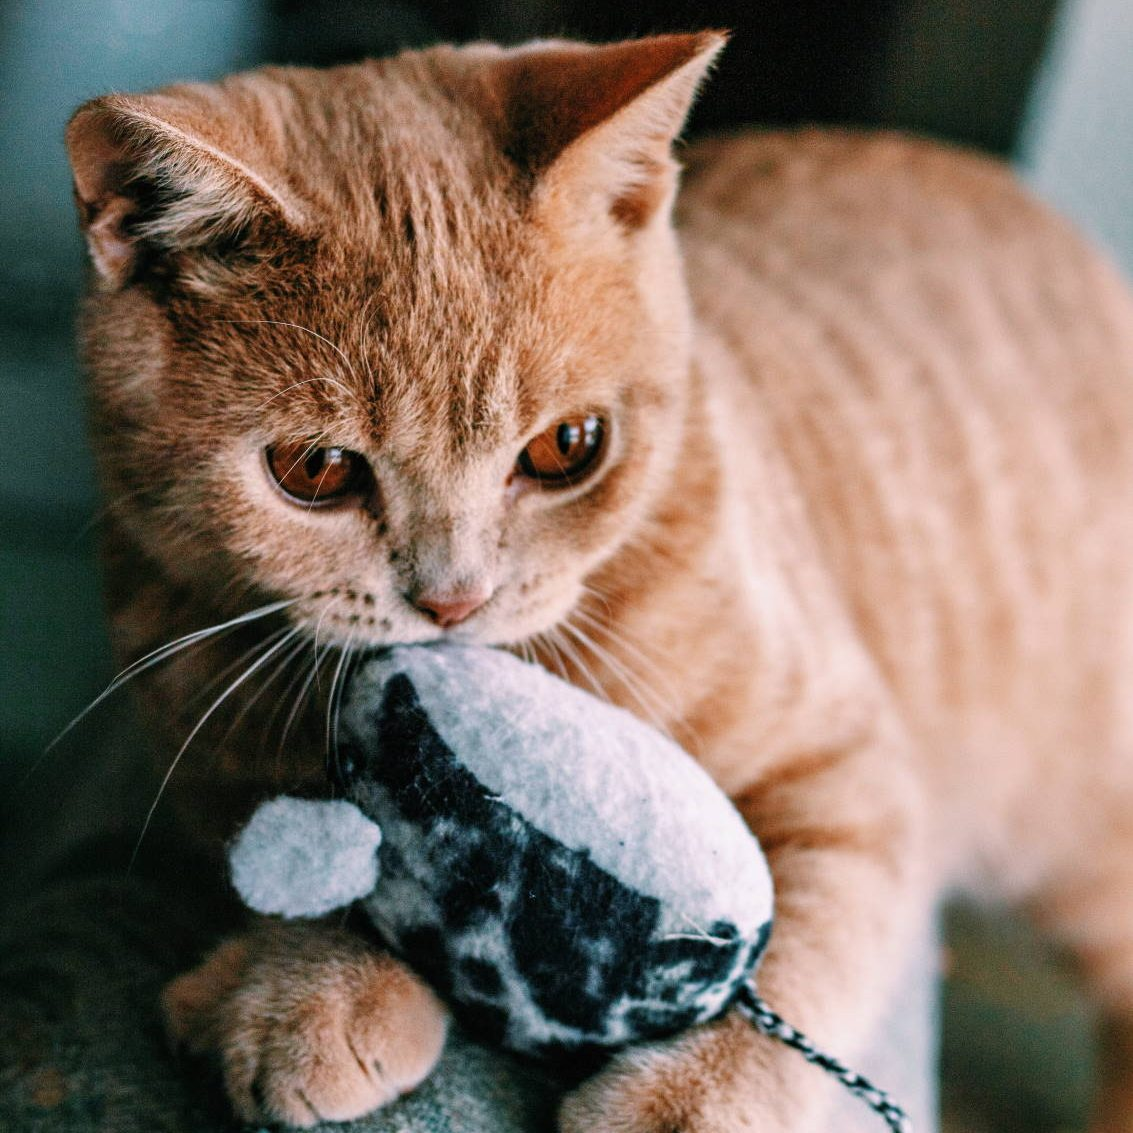 The Top Five Coolest Mouse Toys for Cats - Cats Will Play